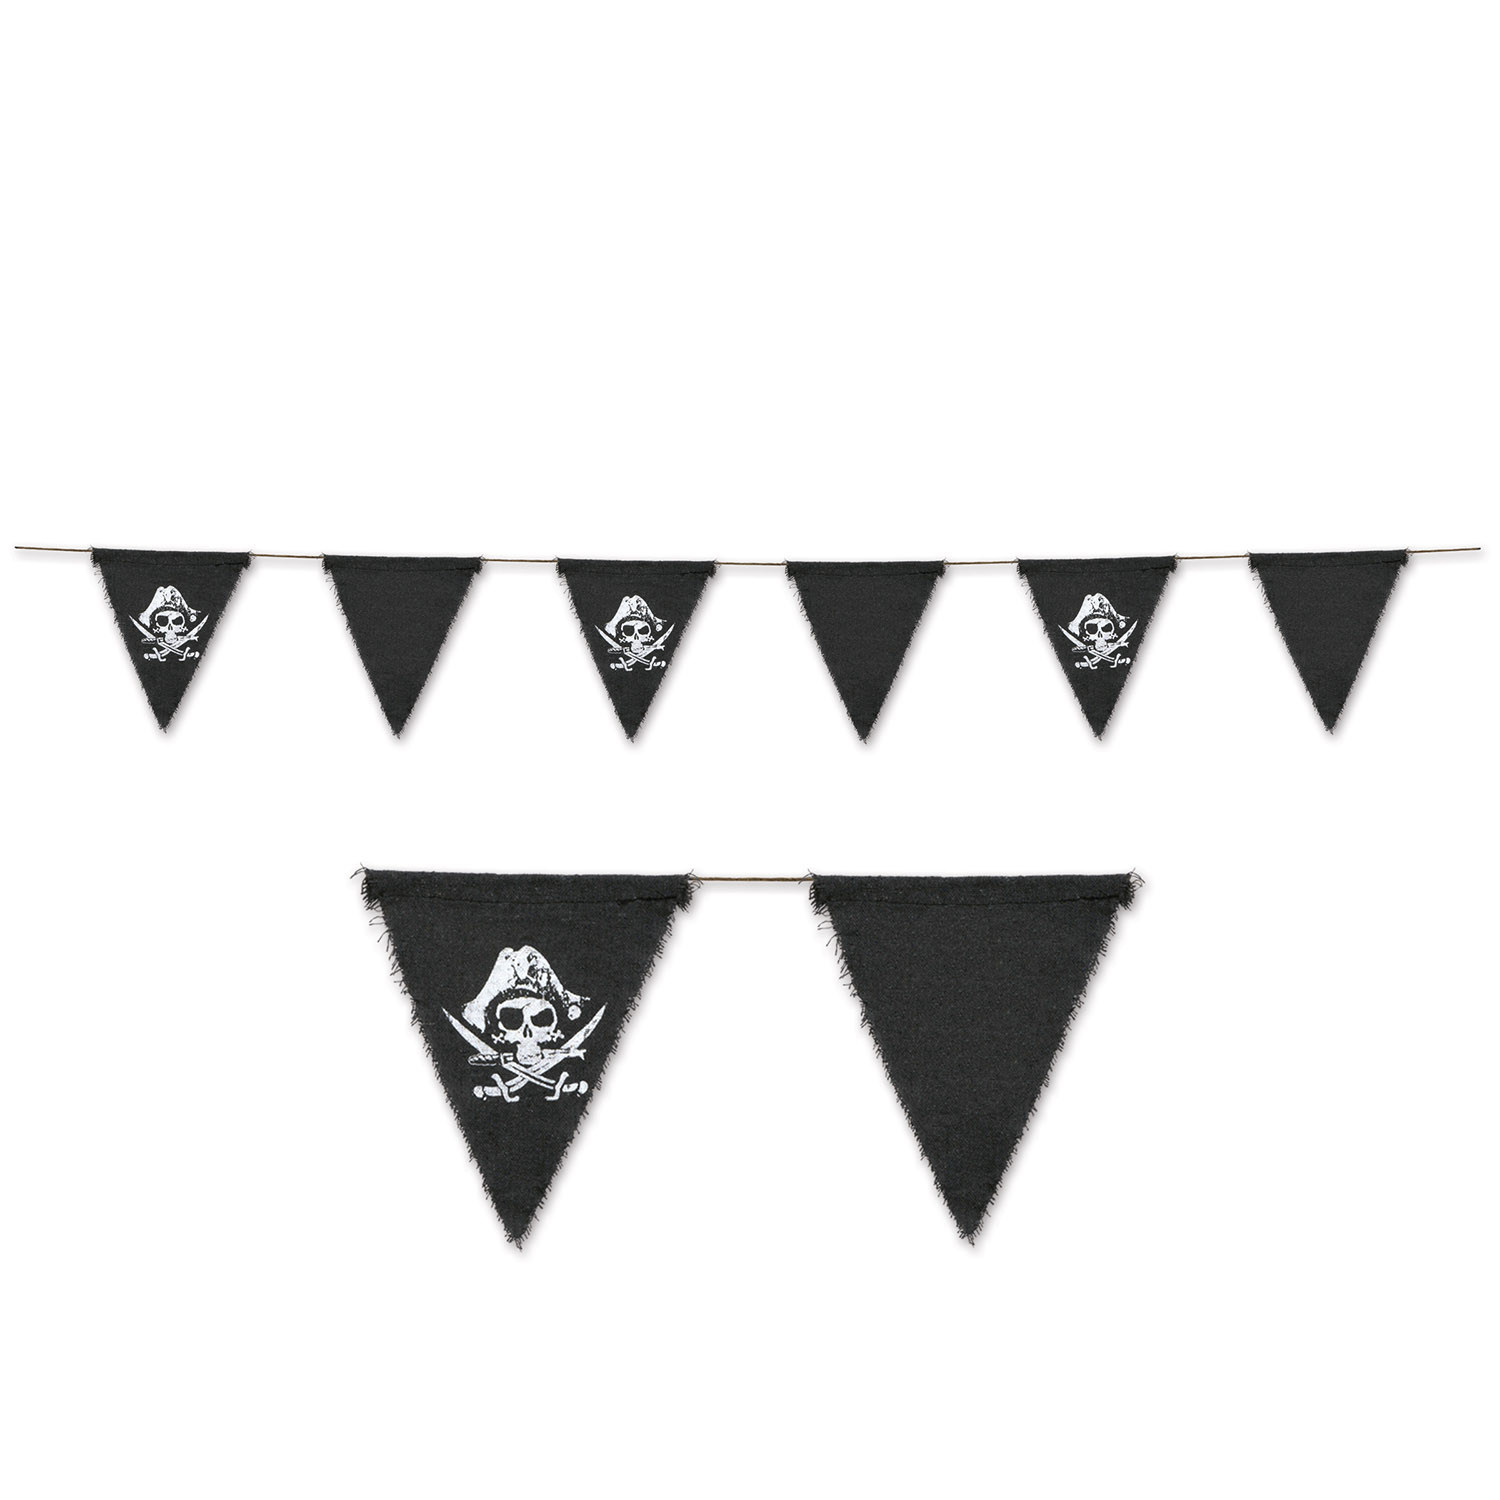 Pirate Fabric Pennant Banner (Pack of 12) Pirate Fabric Pennant Banner, pirate, new years eve, summer, decoration wholesale, inexpensive, bulk